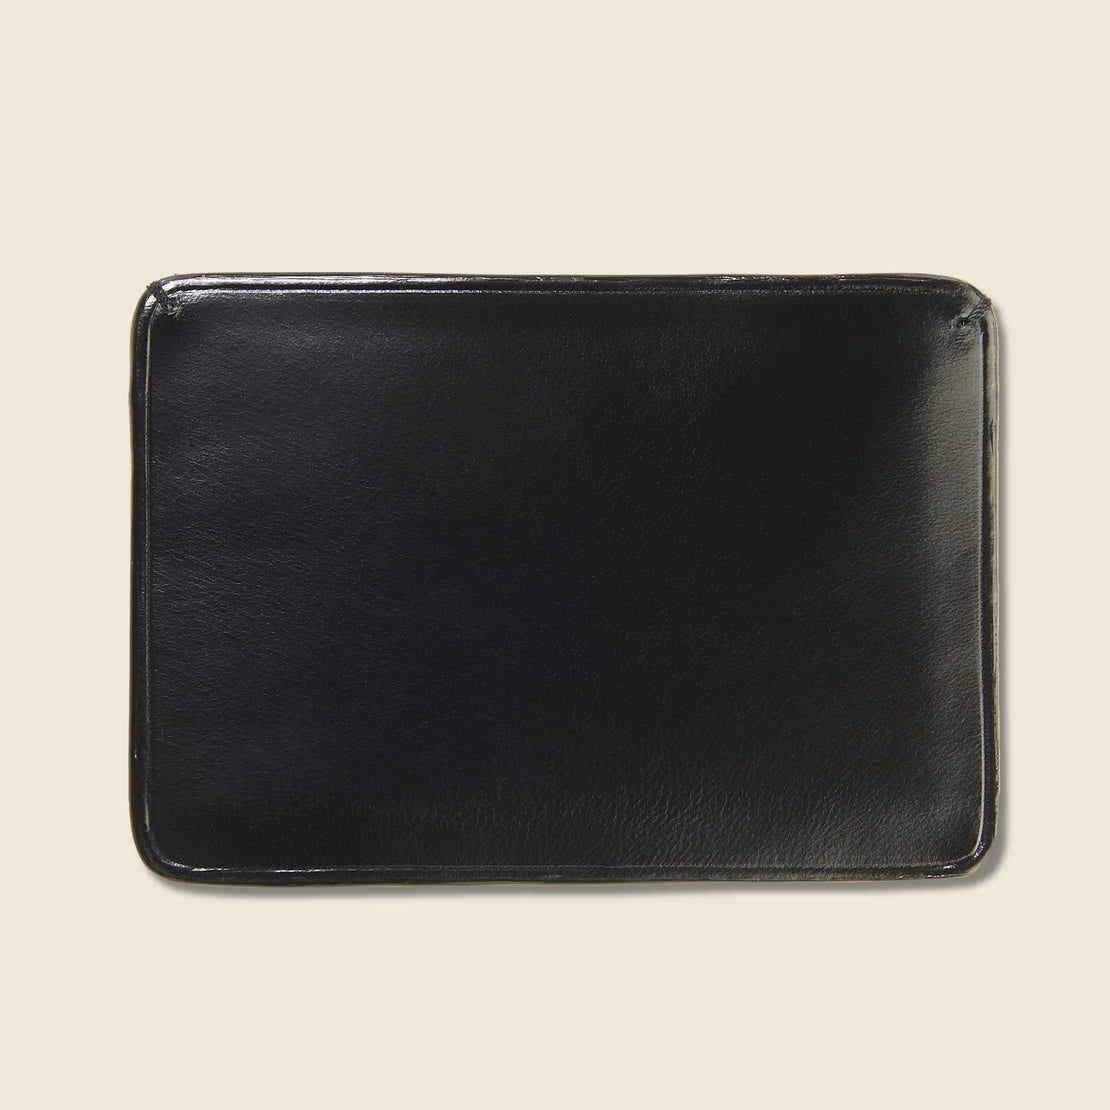 Credit Card Case - Black - Il Bussetto - STAG Provisions - Accessories - Wallets